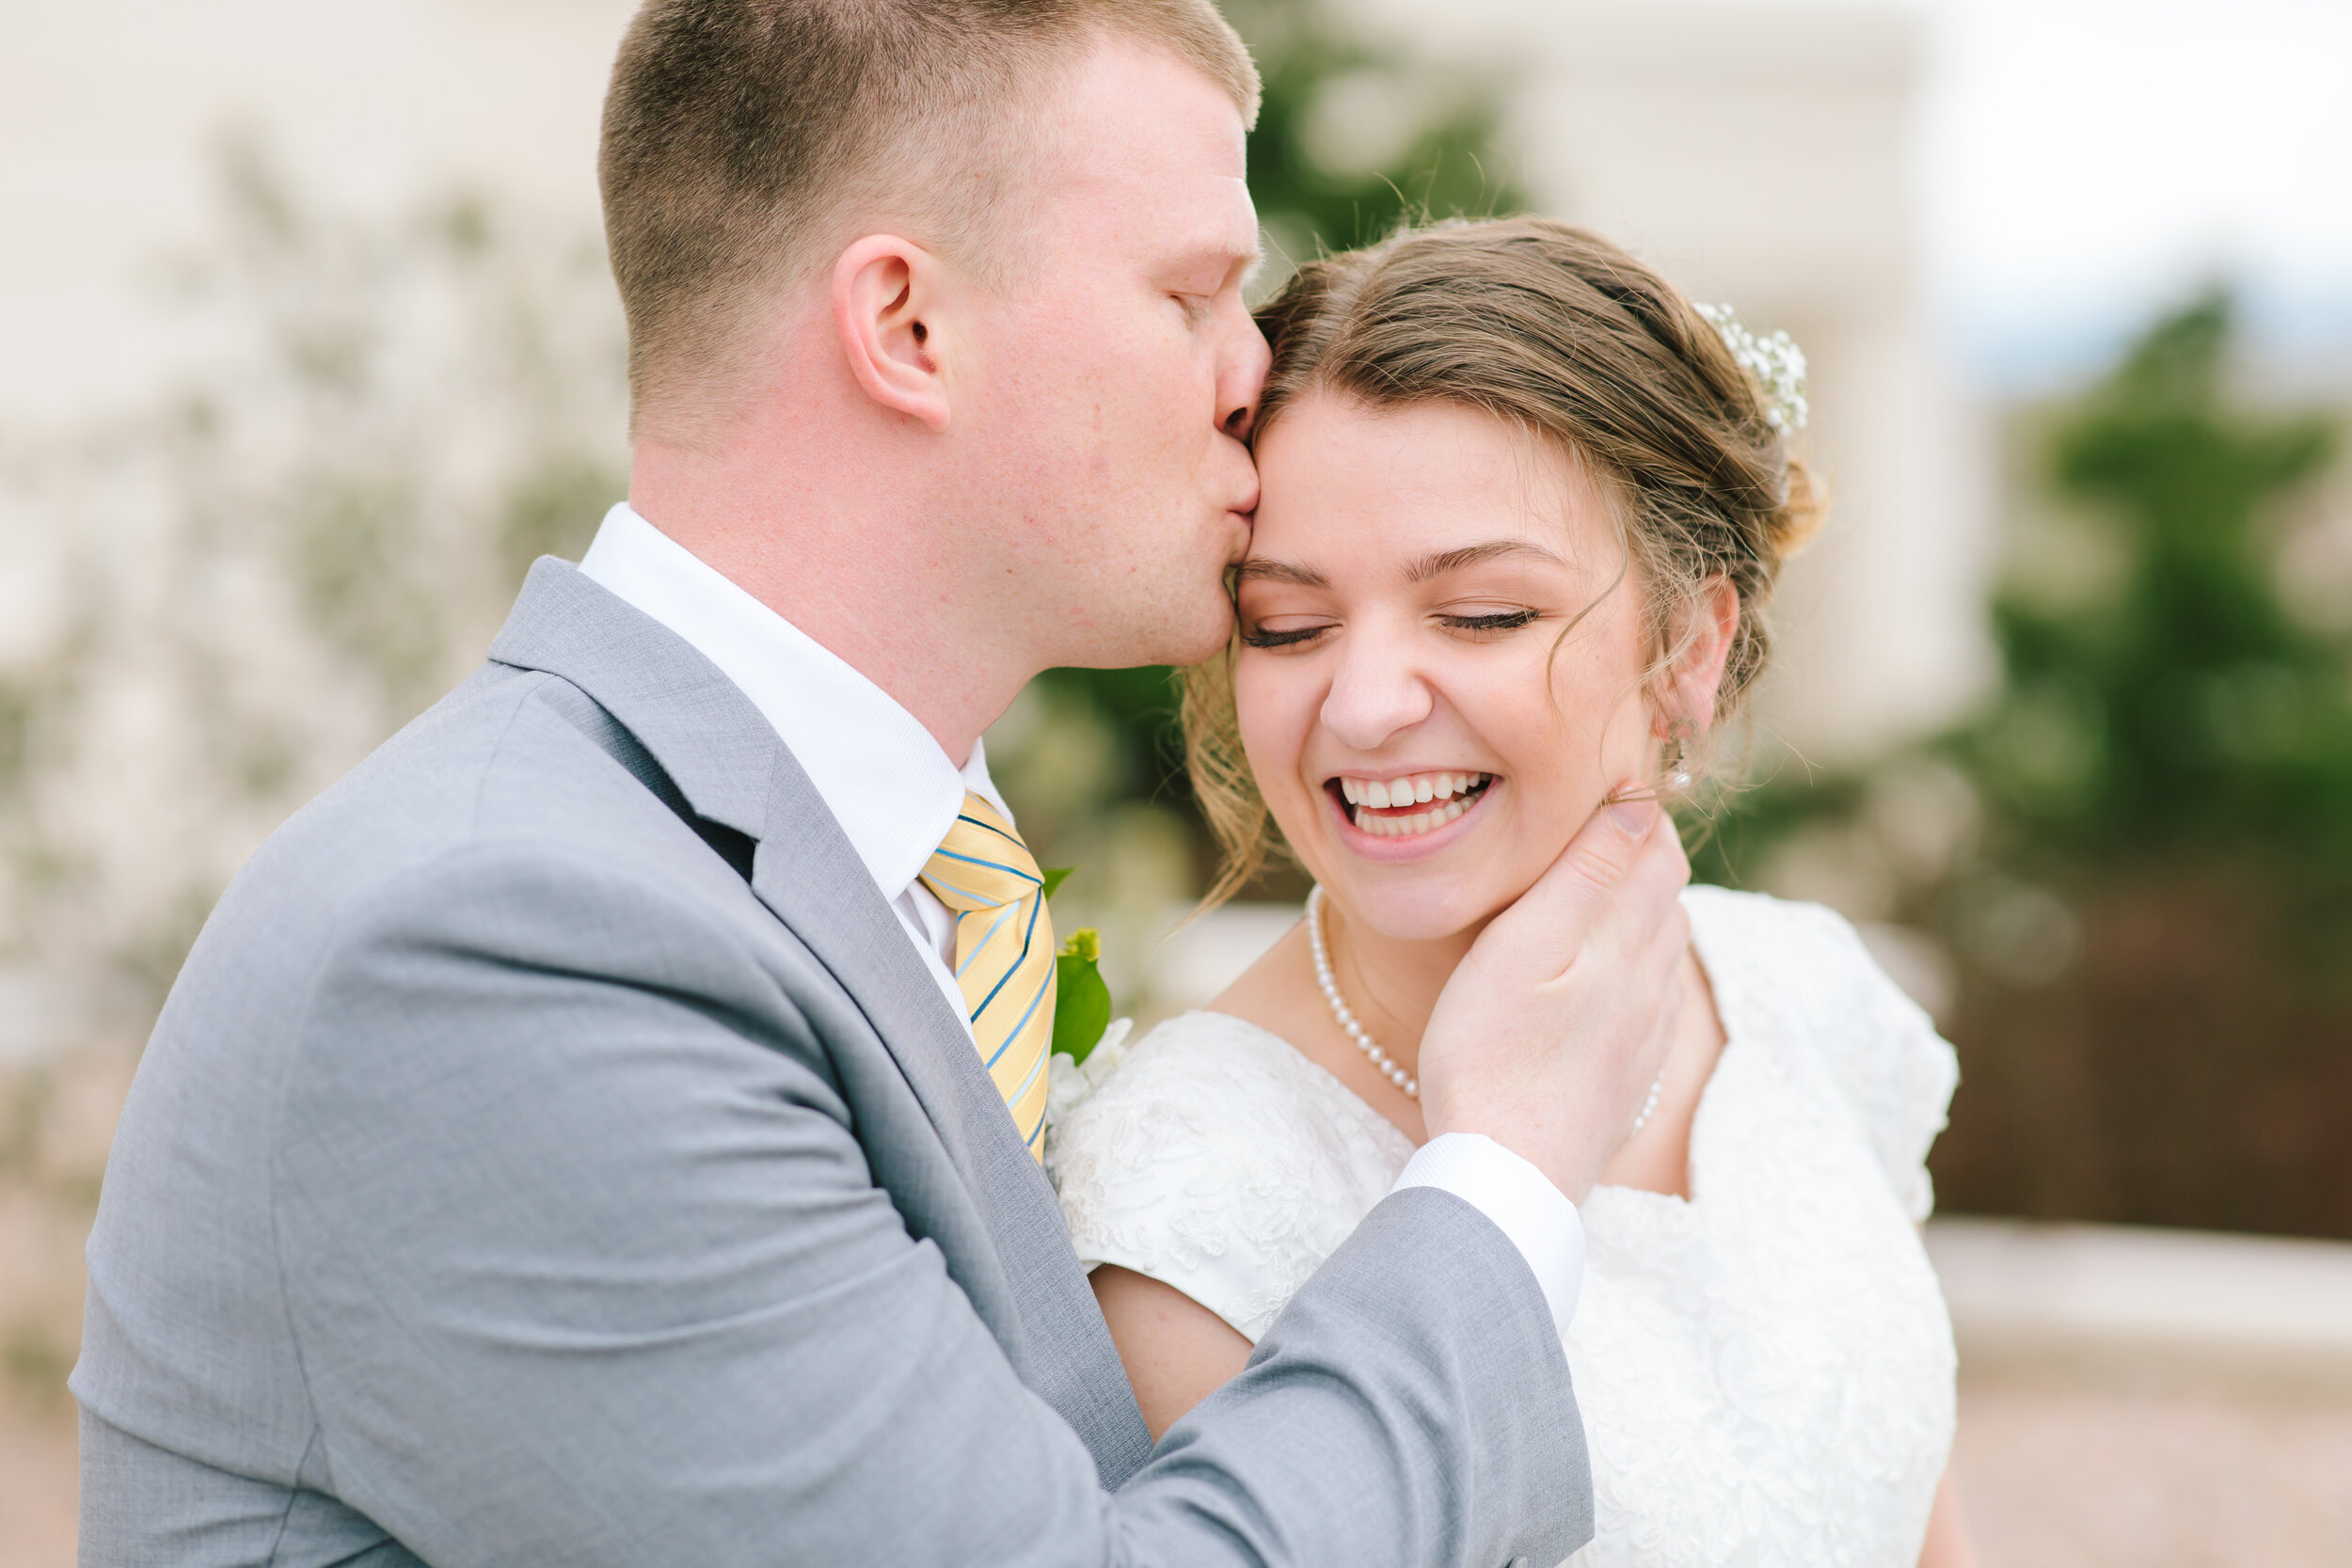 eternal best buddies professional utah photographer true love sealed for time and all eternity temple weddings lds bride forehead kiss pose happy couple yellow tie wedding color inspiration wedding hairstyle inspiration couple pose inspiration groom hairstyle #eternalbuddies #weddingsession #weddinginspo #ldswedding #ldsbride #couplegoals #paysontemple #temple #profressionalphotographer #utah #love